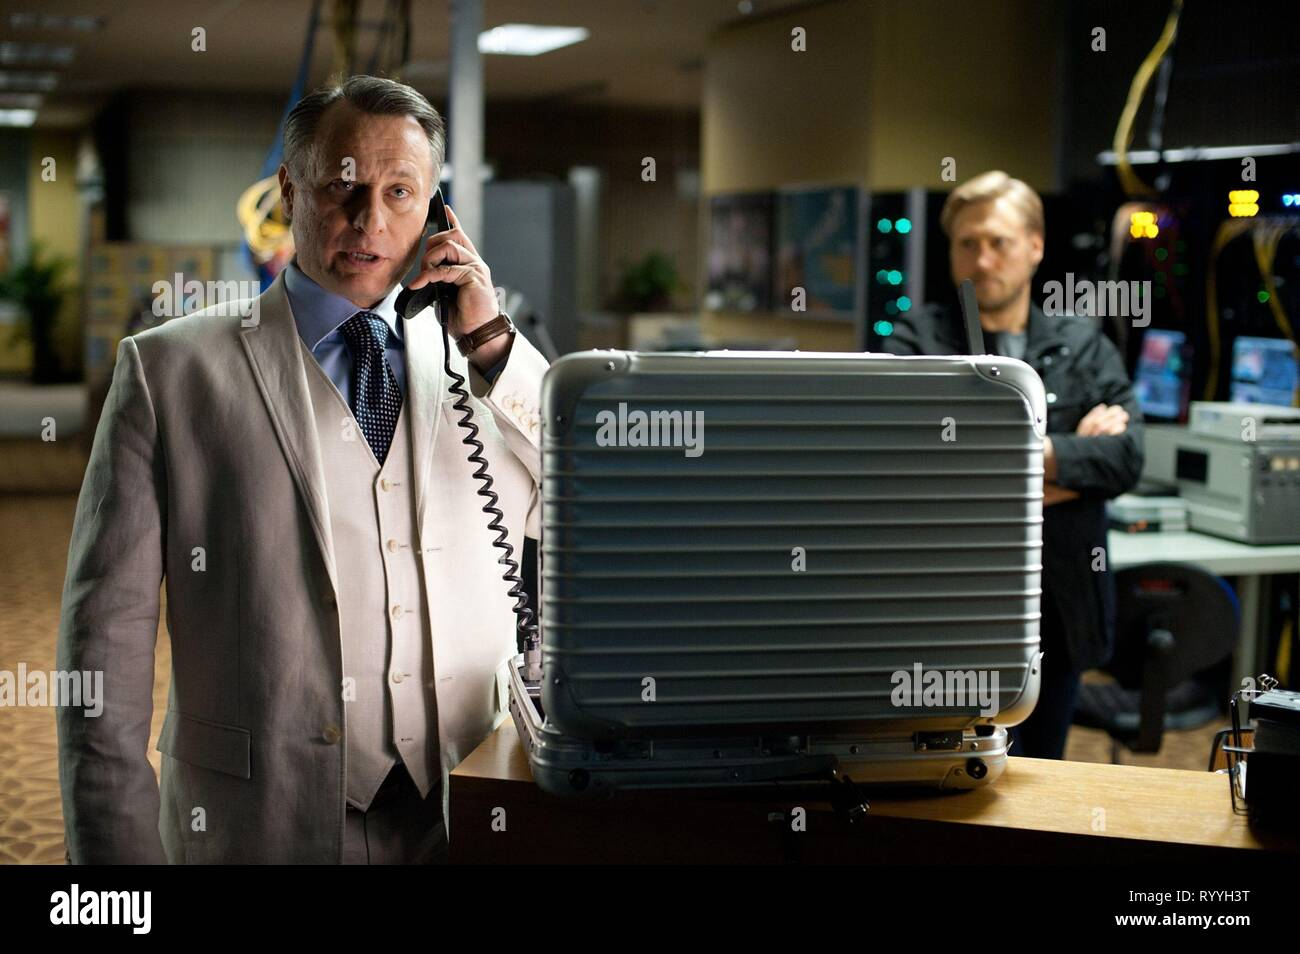 MICHAEL NYQVIST, MISSION: IMPOSSIBLE - GHOST PROTOCOL, 2011 - Stock Image